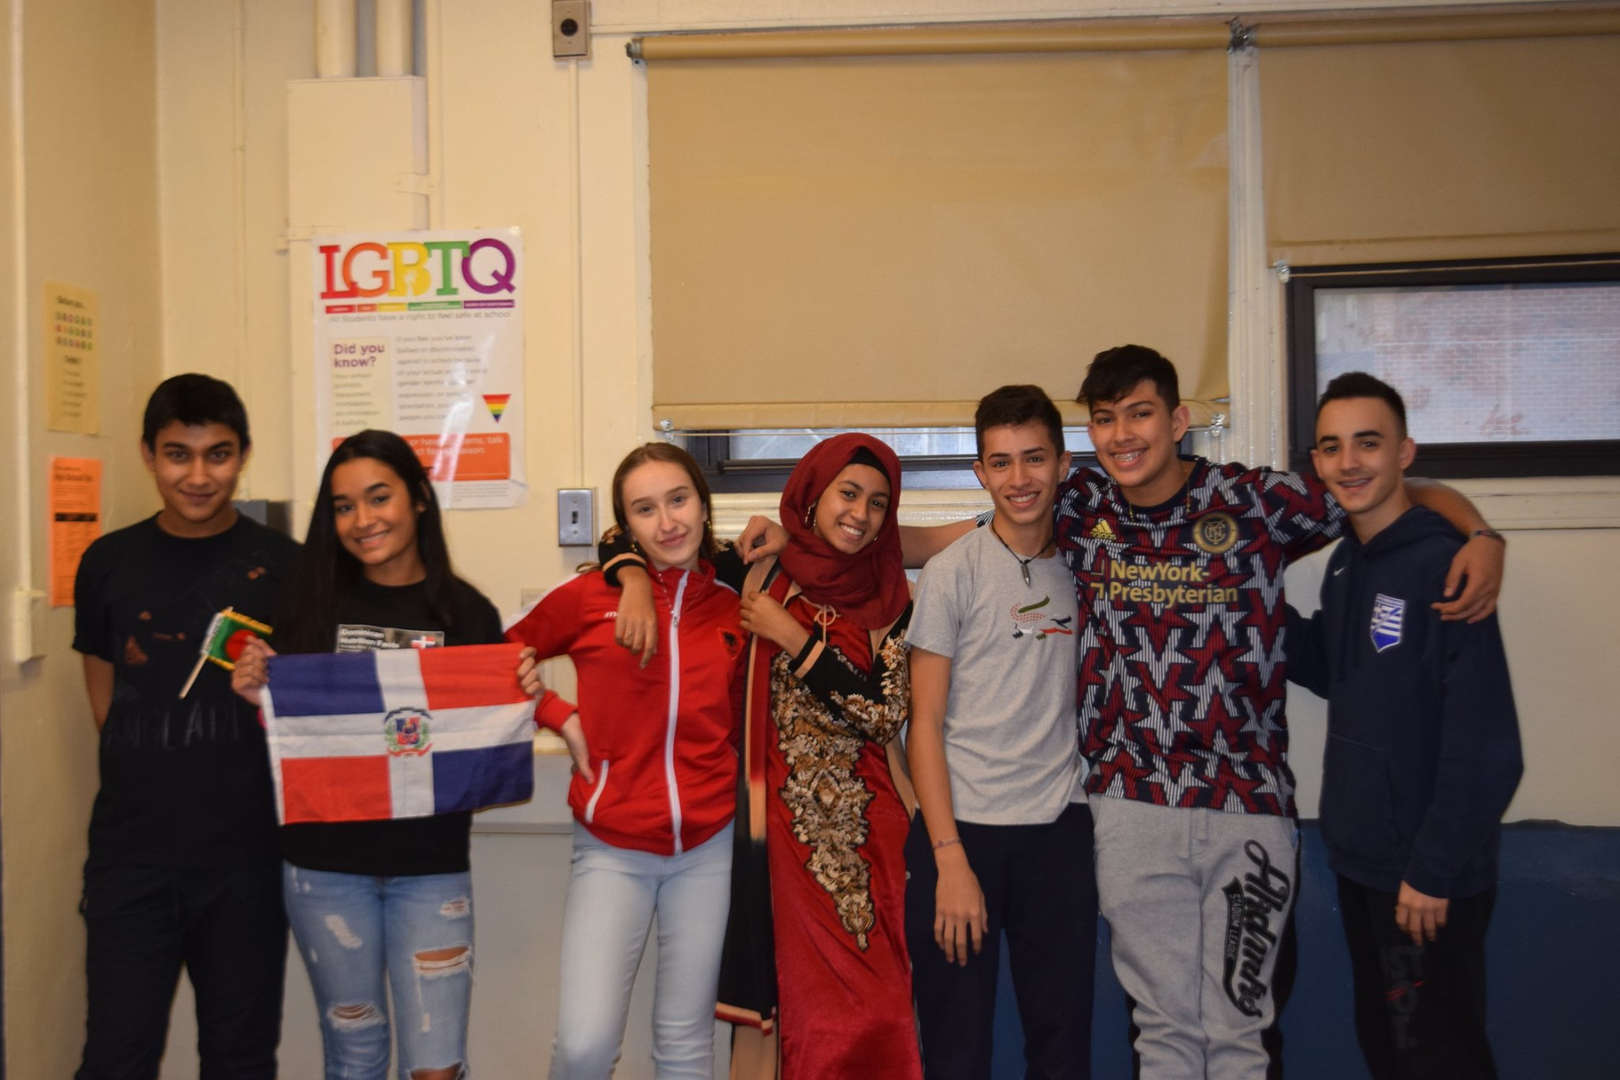 Academy celebrates Heritage Day during Spirit Week